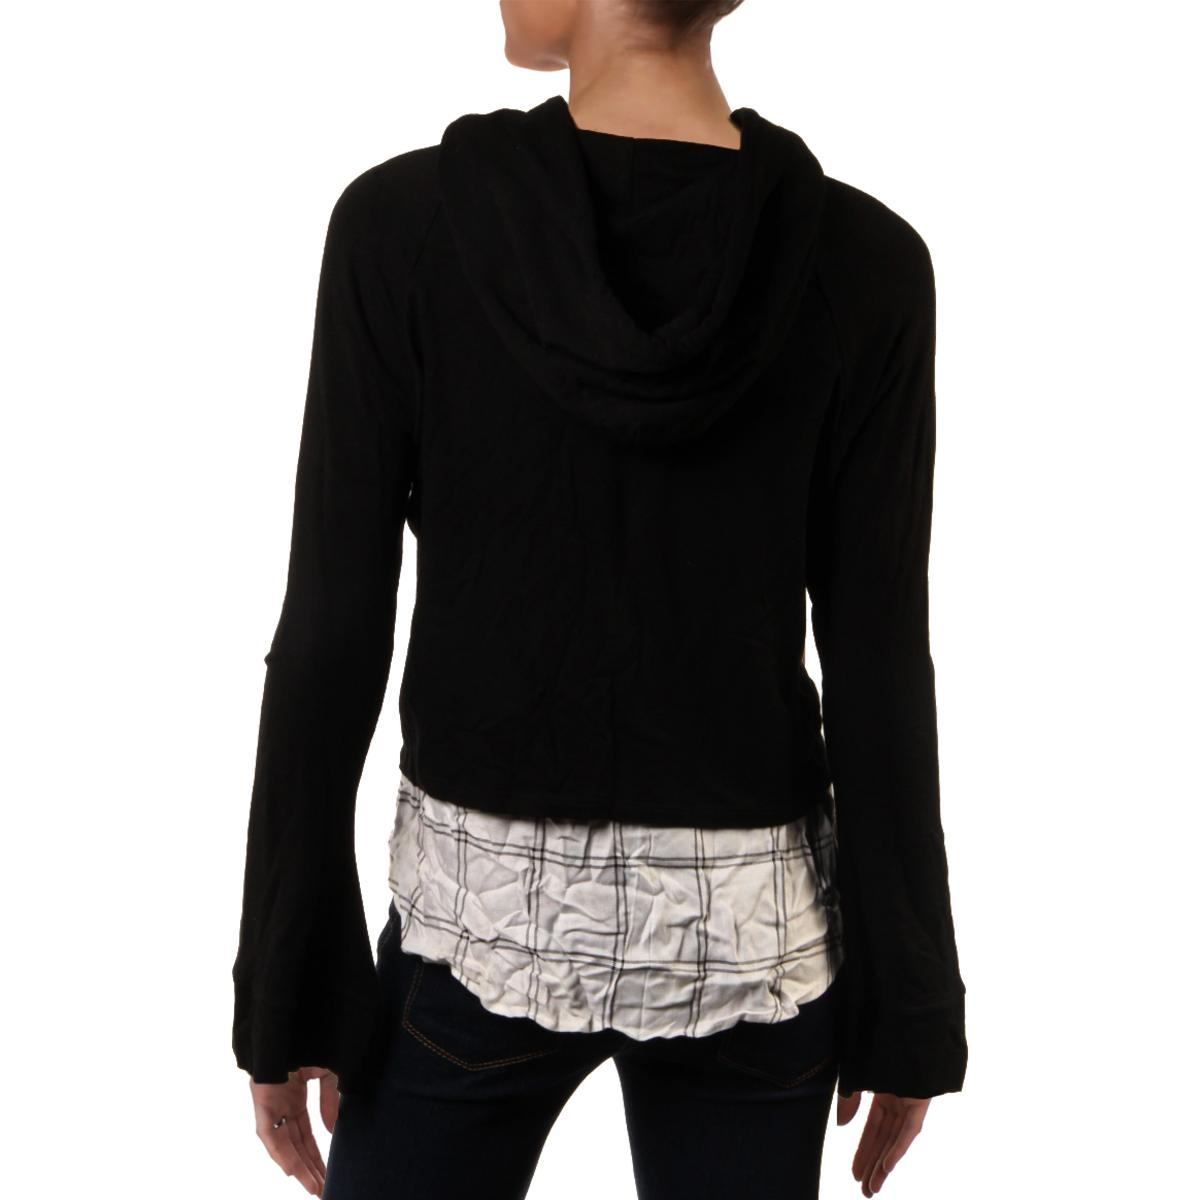 Generation Love Womens Knit Layered Long Sleeves Hoodie Top BHFO 4892